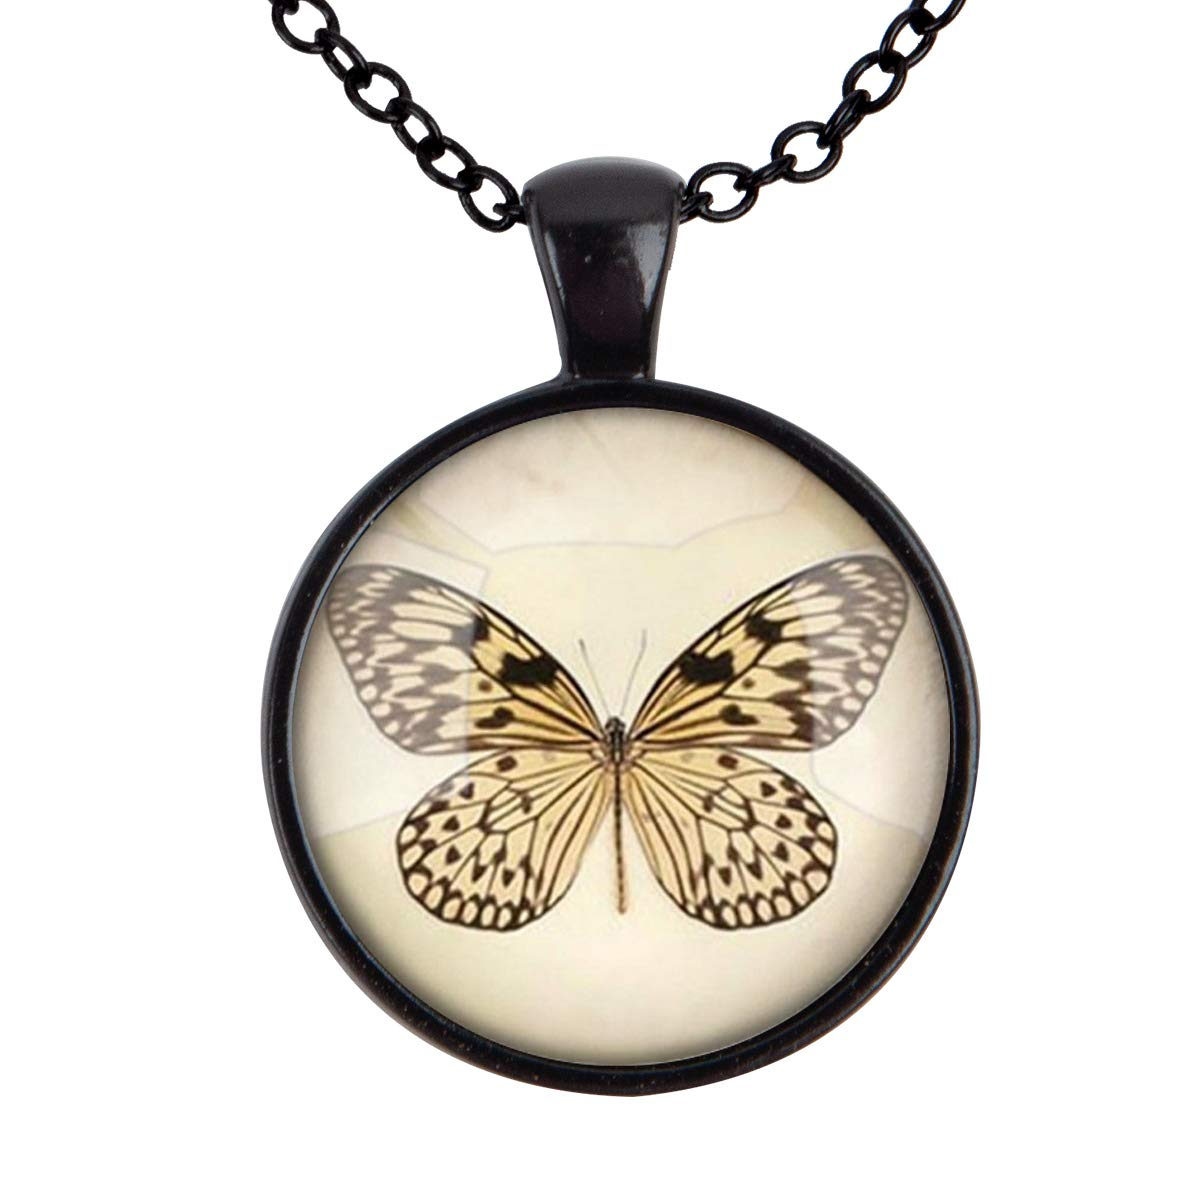 Family Decor Butterfly Photo Retro Style Pendant Necklace Cabochon Glass Vintage Bronze Chain Necklace Jewelry Handmade